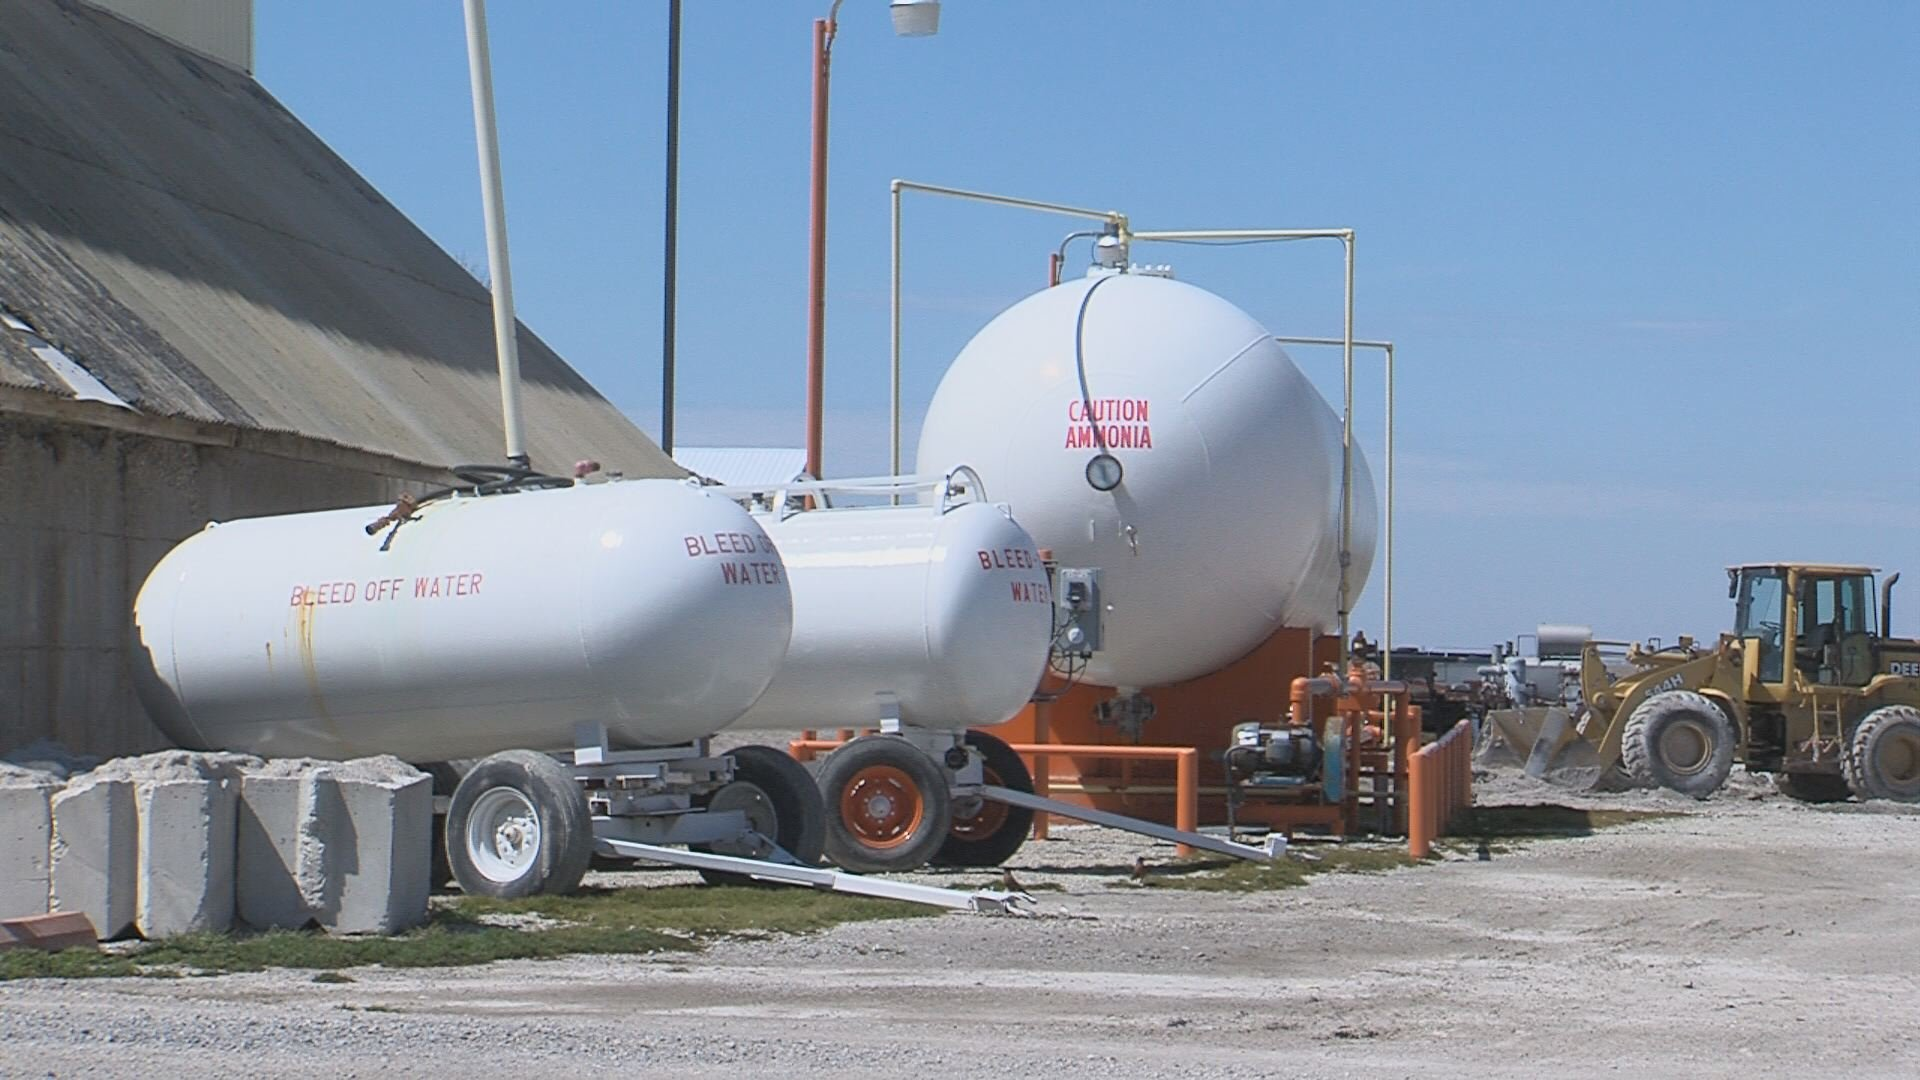 anhydrous ammonia spill leads to evacuations